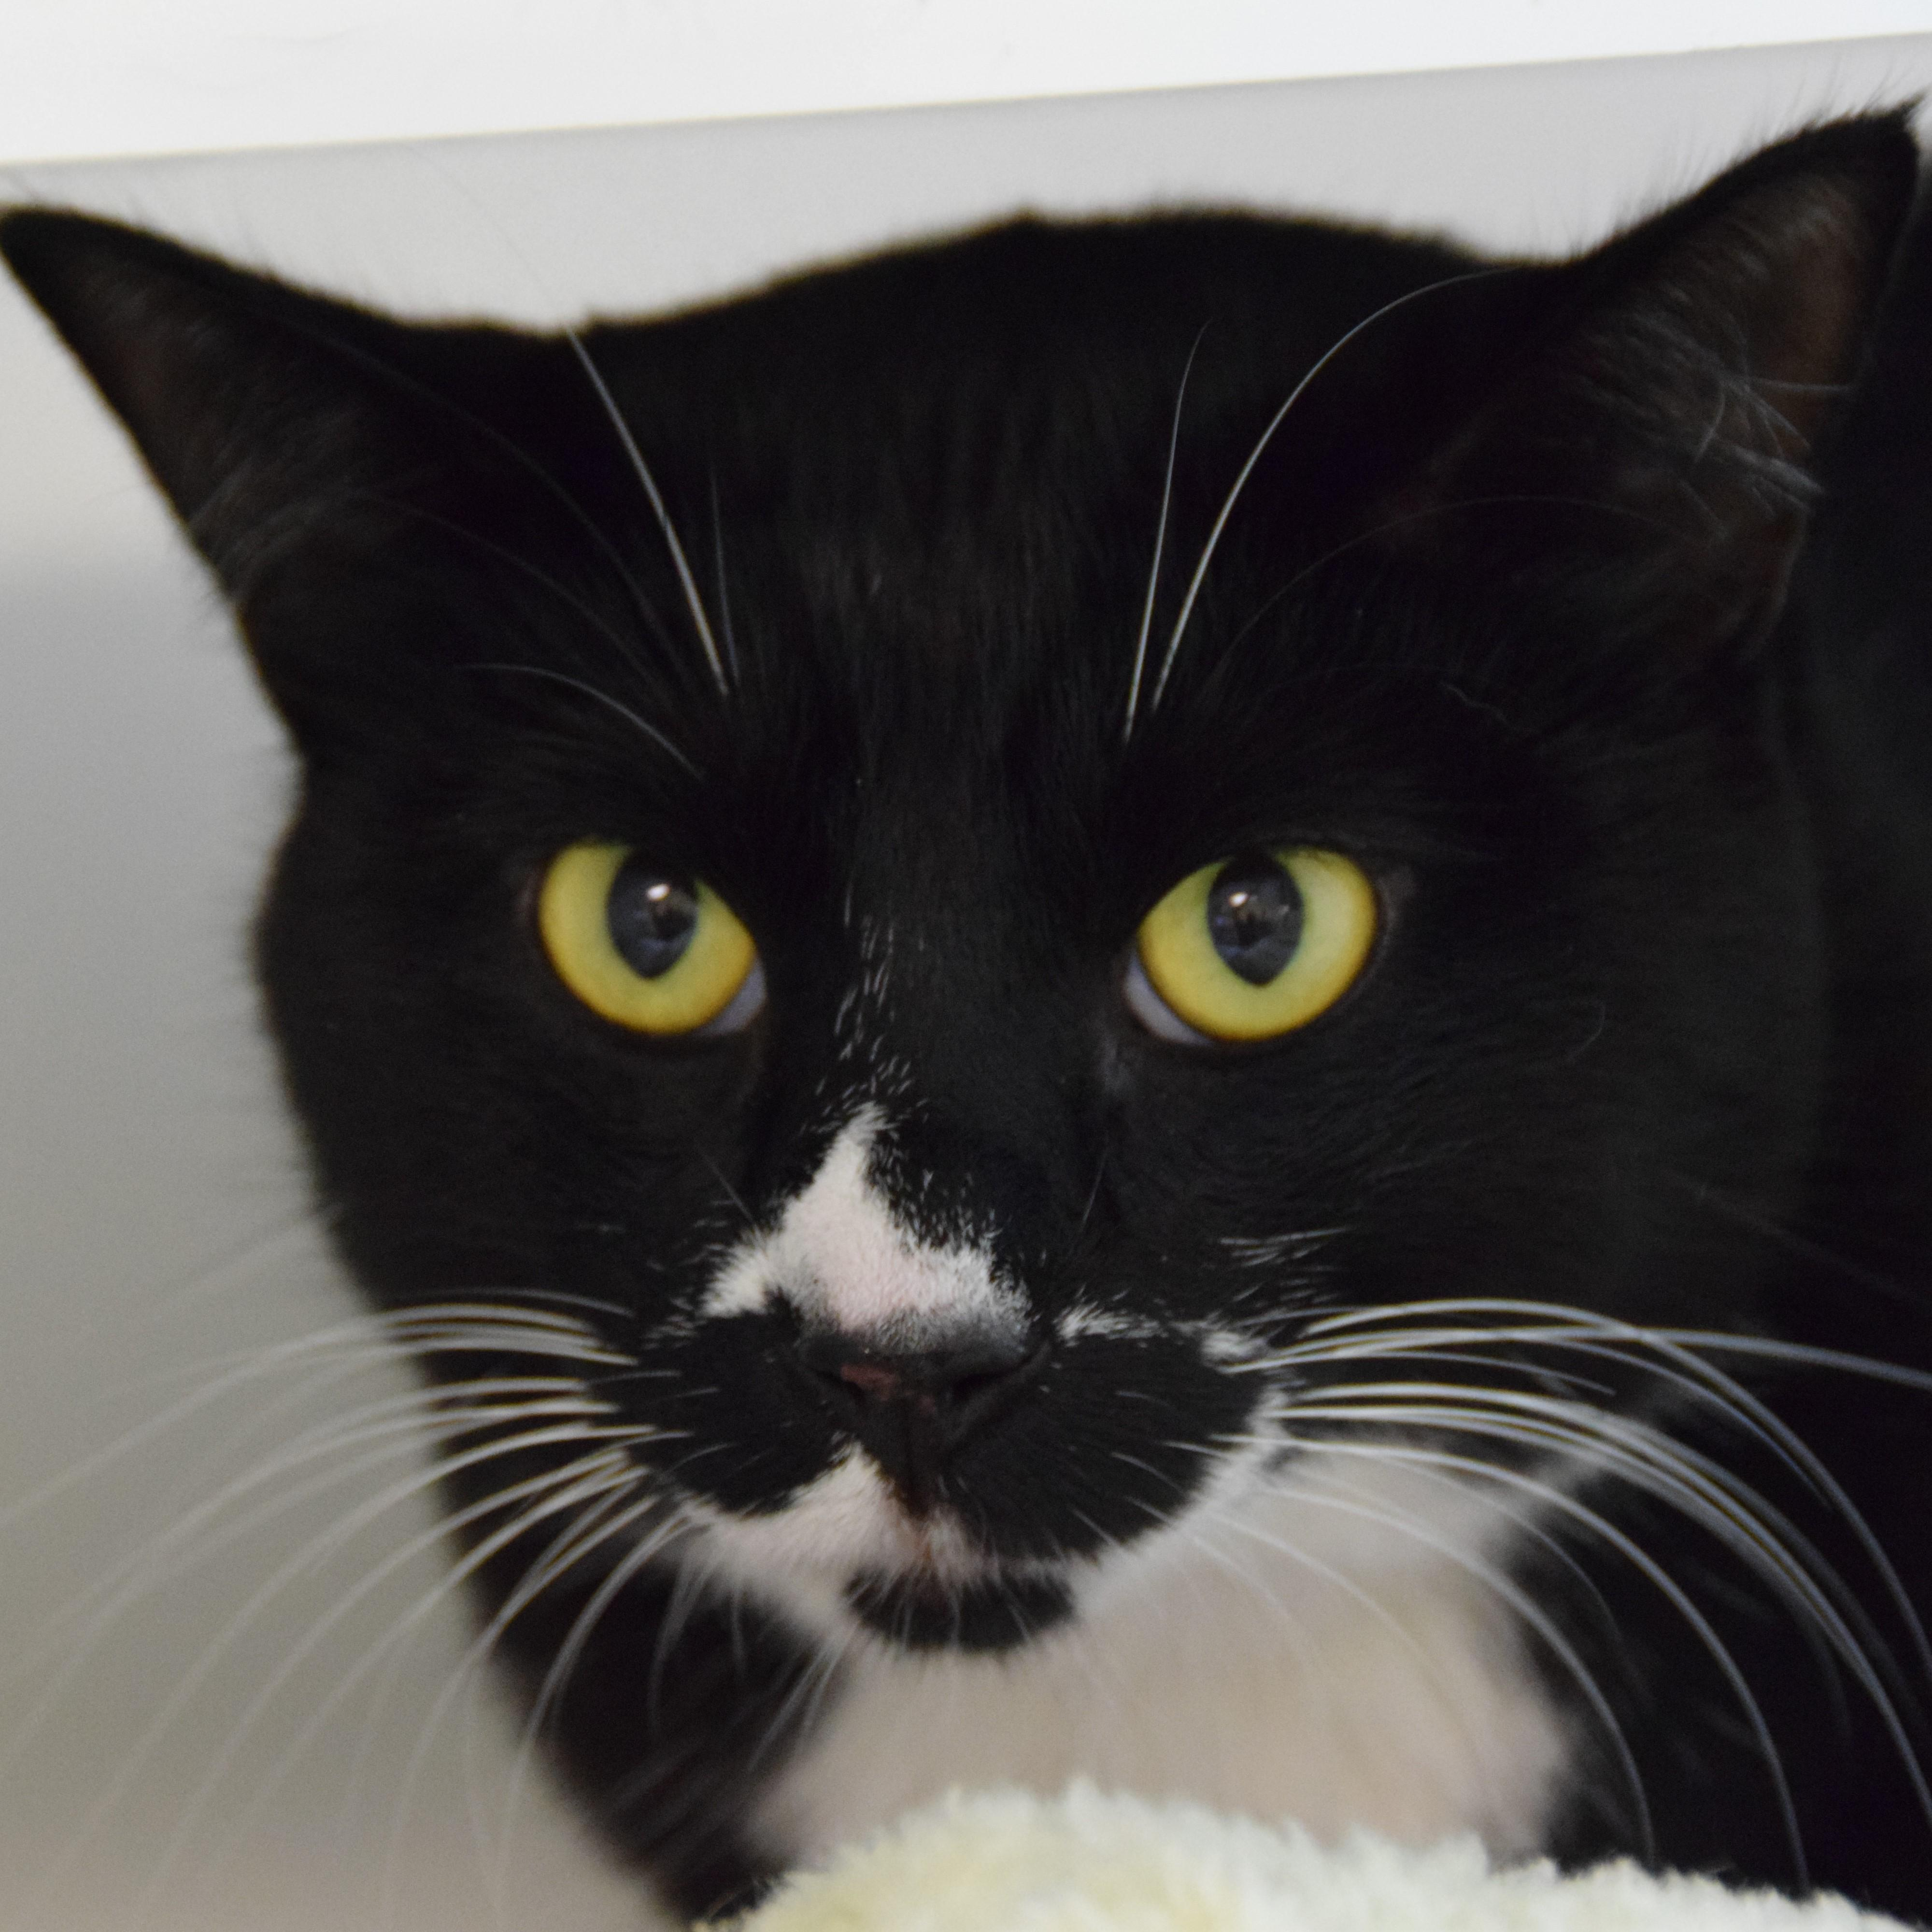 Active and charming, I'm Thomas - a handsome, two year old Tuxedo boy looking for a family to love! I've done well with other kitties before, but dog friends make me nervous so a home without them would be best for me. Playful and independent describe me to a T - I guess you could say I'm a great catch! Teens and adults would make ideal family members for me, and once acclimated, you'll see my bright and funny side shine. Can I warm your heart and home?